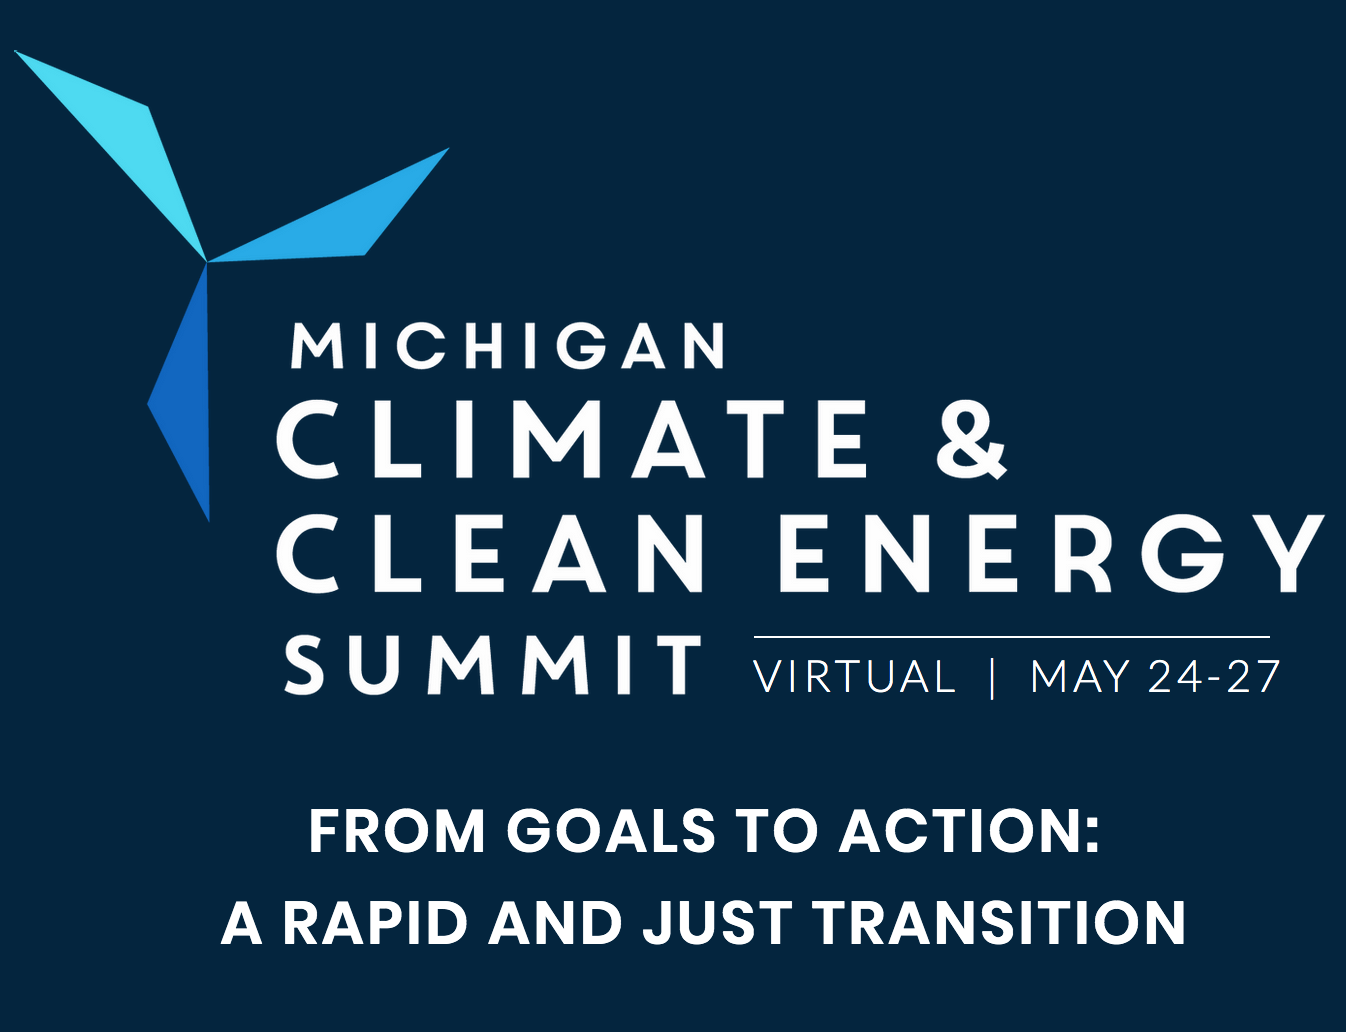 Michigan Climate Action Summit